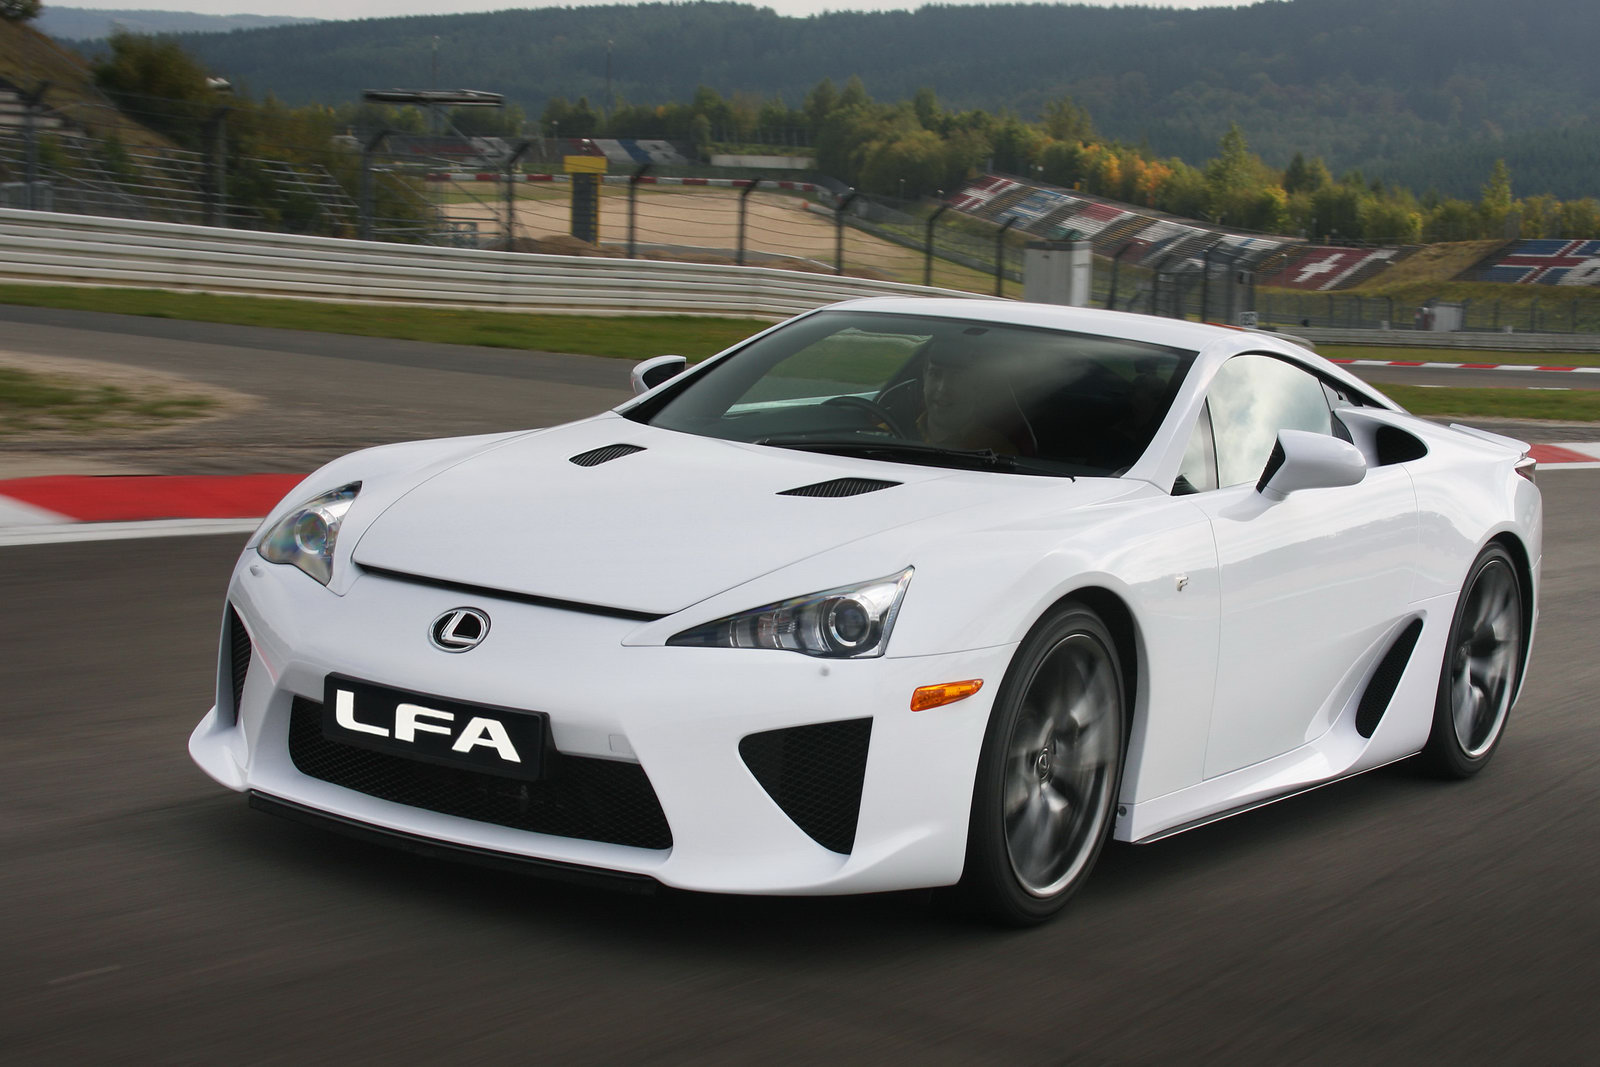 Lexus LFA photo 11